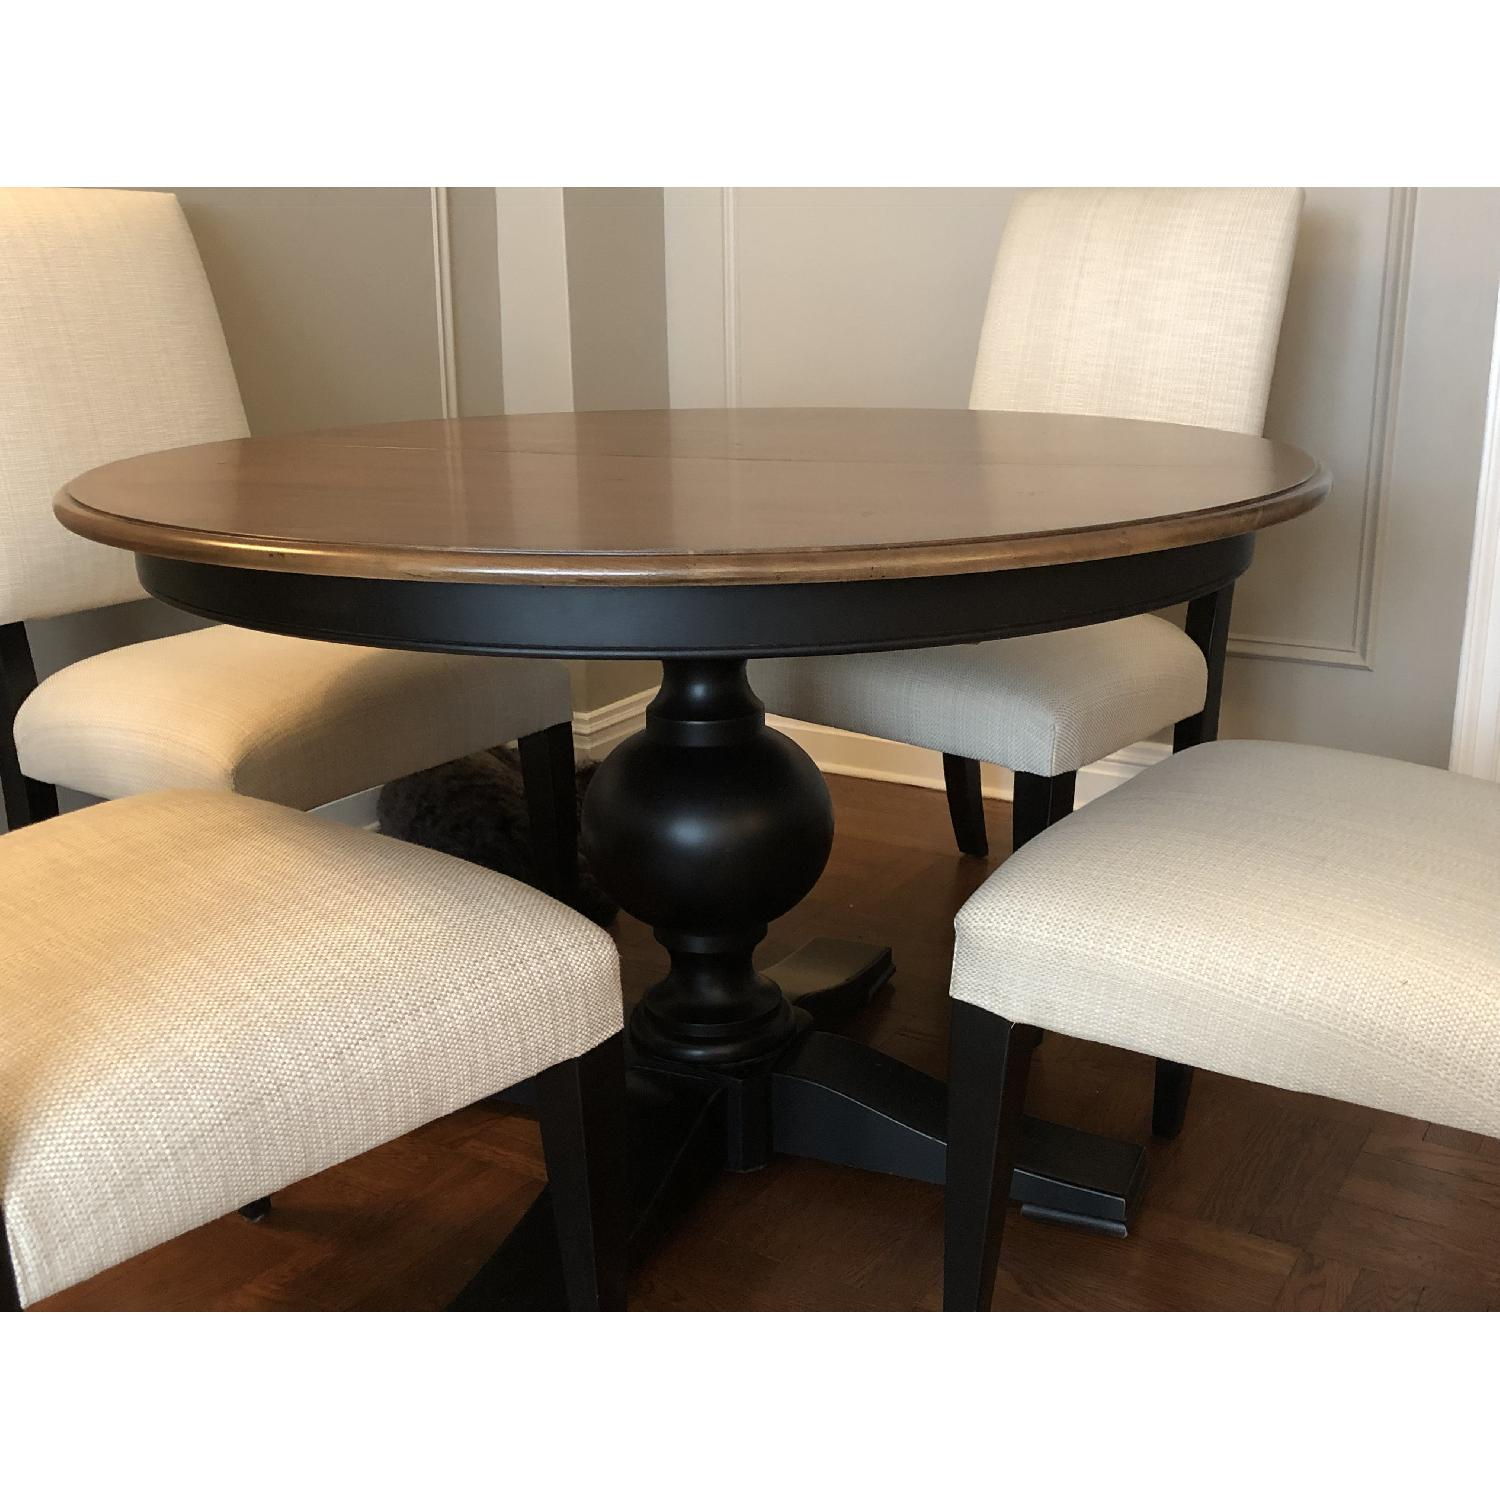 Ethan Allen Expandable Dining Table w/ 4 Chairs - image-3